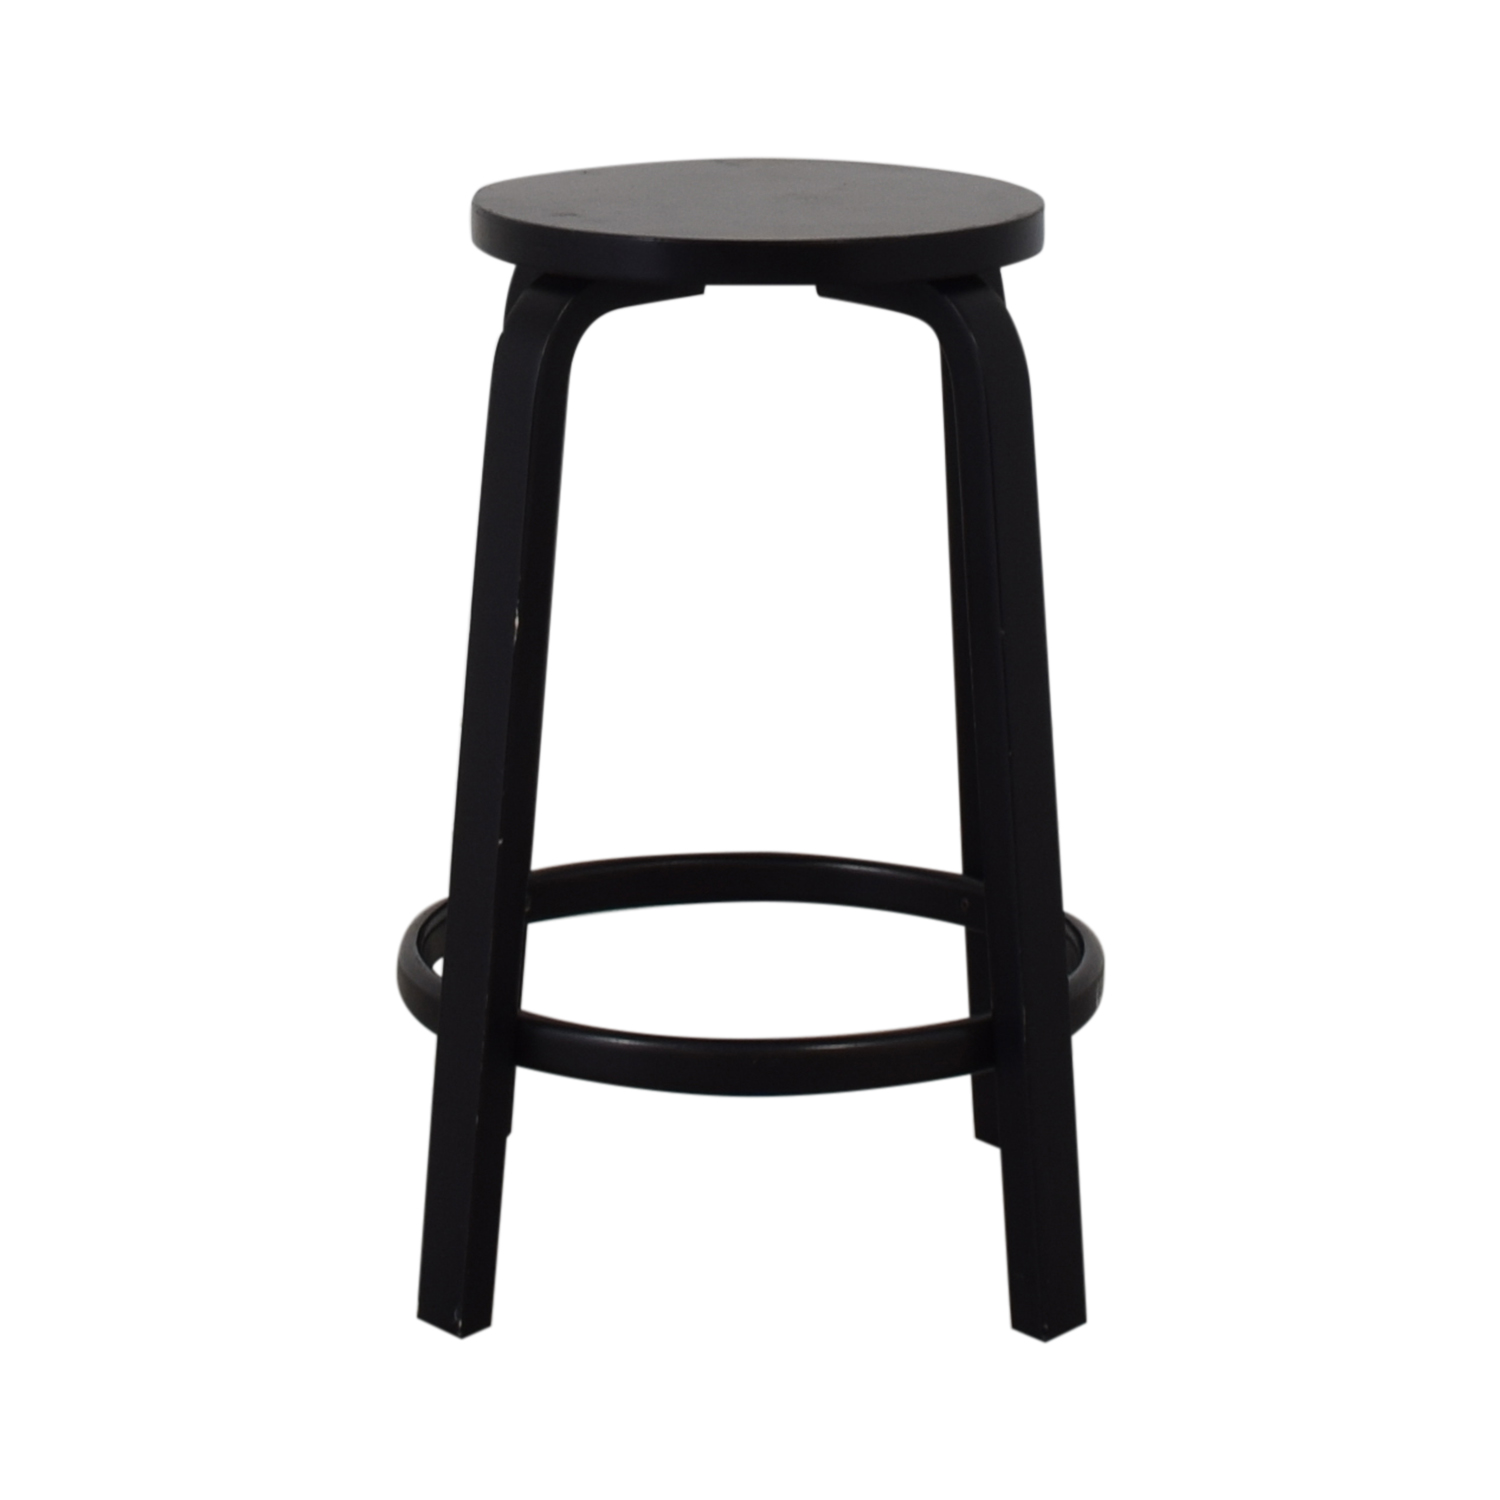 68 Off Indecasa Indecasa Bar Stools Chairs